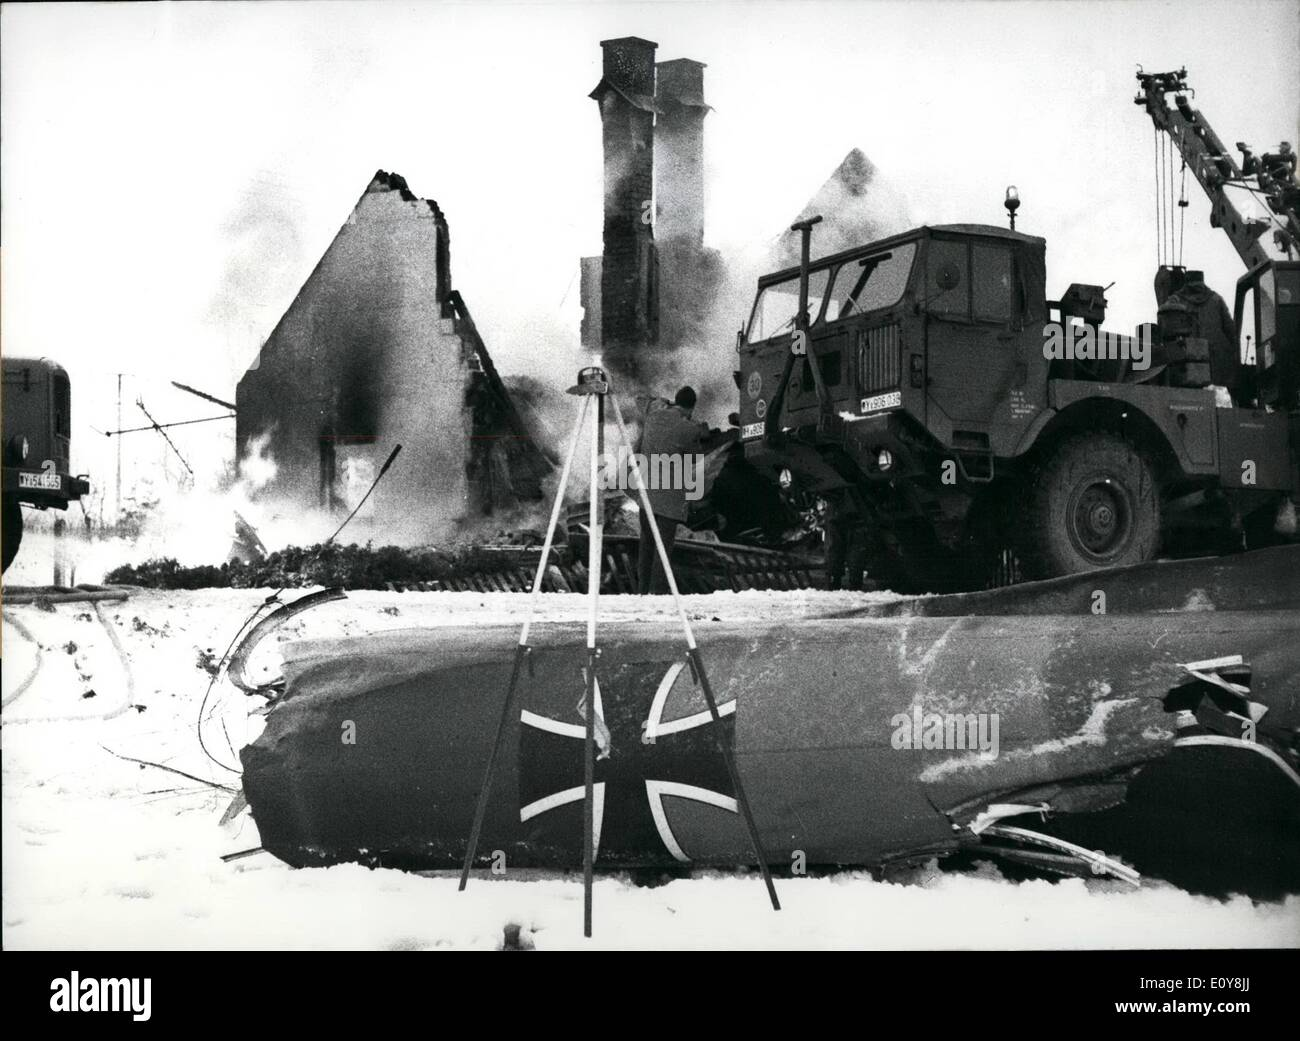 Feb. 02, 1969 - Airplane Crashed on house: A Nor-Atlas tranporting machine of the German Federal Army crashed in the district of Erding near Munich on 12 February,1969. The Airplane had 13 passangers on bord, nine were killed, four severely injured. A two-year-old child in the house on which the plane crashed, was killed too. Photo shows The demolished house and in the front the plane-ruins with the Bundeswehr-sign. - Stock Image